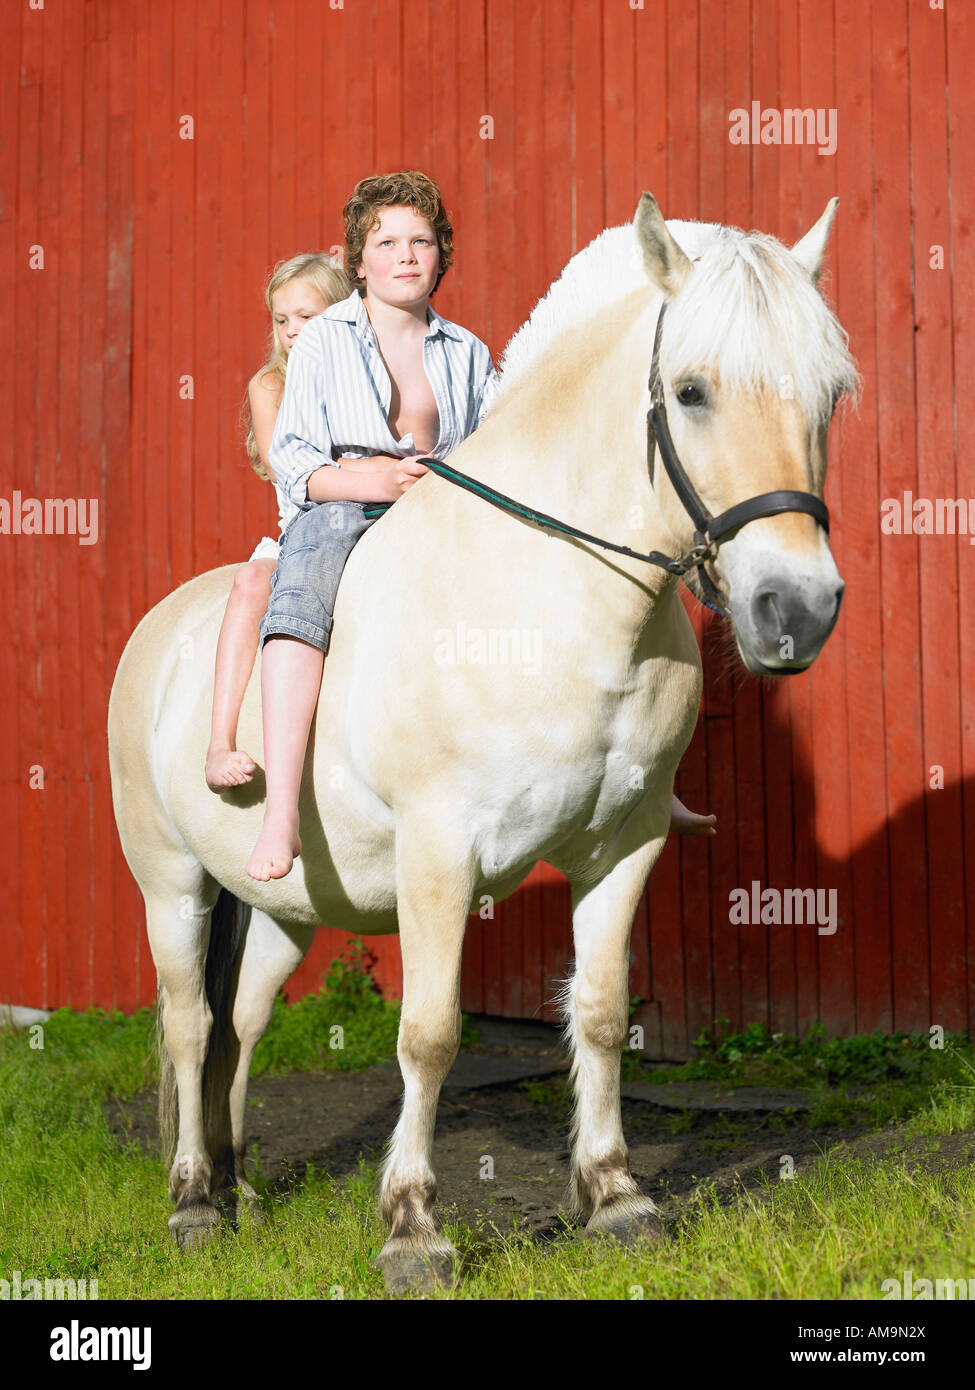 Young boy and young girl on a horse in front of a red wall. Stock Photo